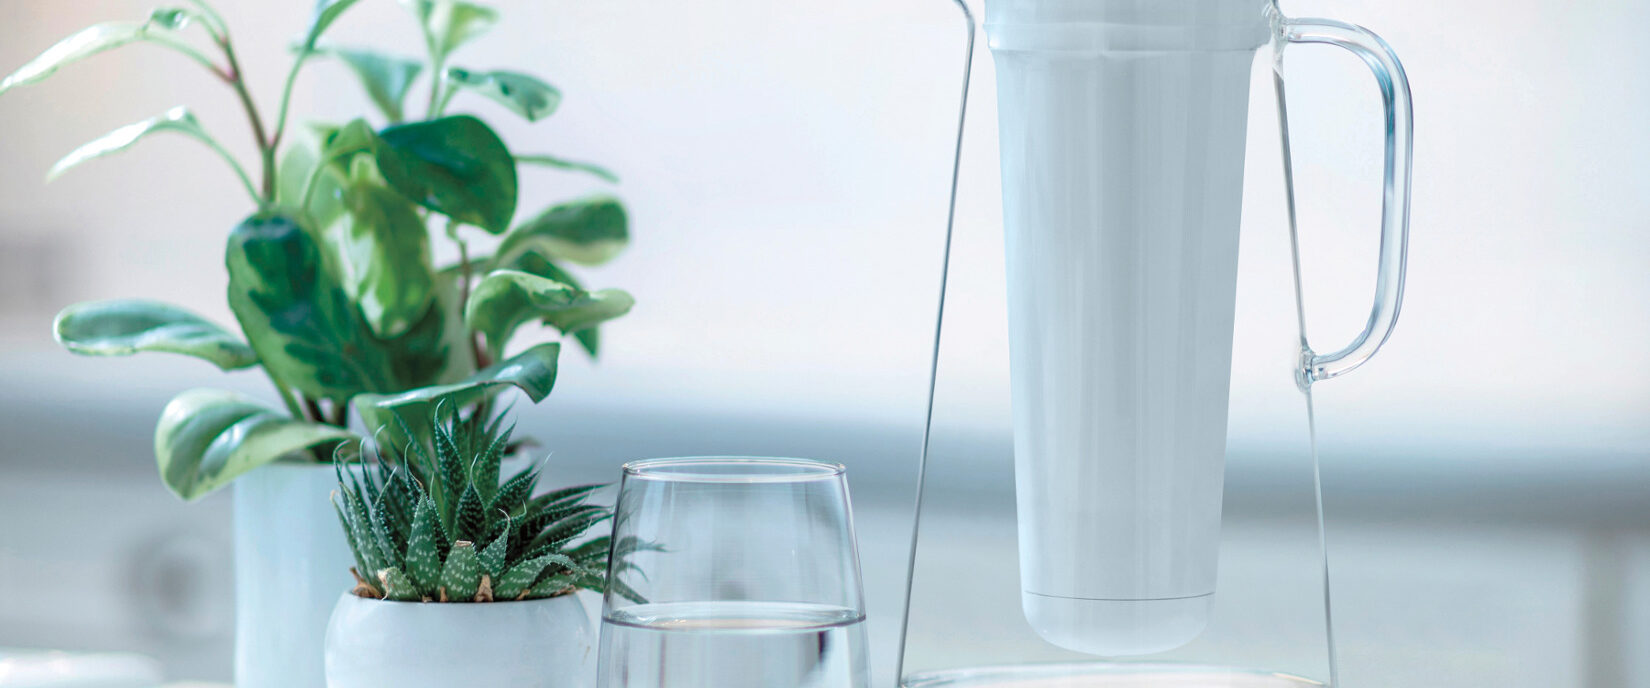 Plants and pitcher